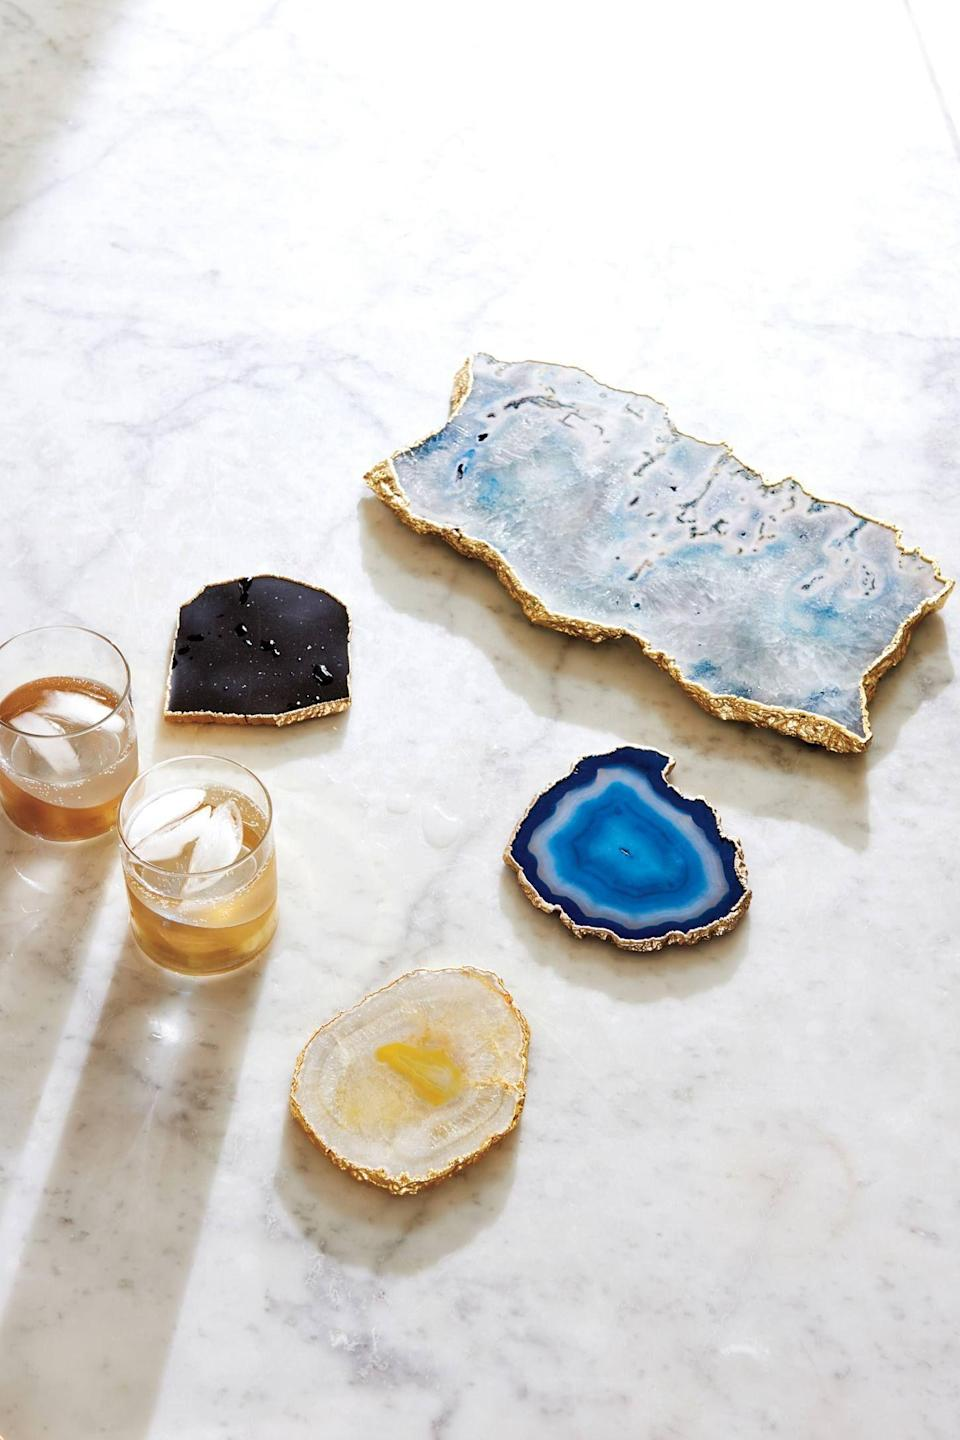 """<p><strong>Anthropologie</strong></p><p>anthropologie.com</p><p><strong>$14.00</strong></p><p><a href=""""https://go.redirectingat.com?id=74968X1596630&url=https%3A%2F%2Fwww.anthropologie.com%2Fshop%2Fgeode-coaster&sref=https%3A%2F%2Fwww.delish.com%2Fkitchen-tools%2Fg4499%2Fbest-friend-gifts%2F"""" rel=""""nofollow noopener"""" target=""""_blank"""" data-ylk=""""slk:BUY NOW"""" class=""""link rapid-noclick-resp"""">BUY NOW</a></p><p>The prettiest place for her drinks.</p>"""